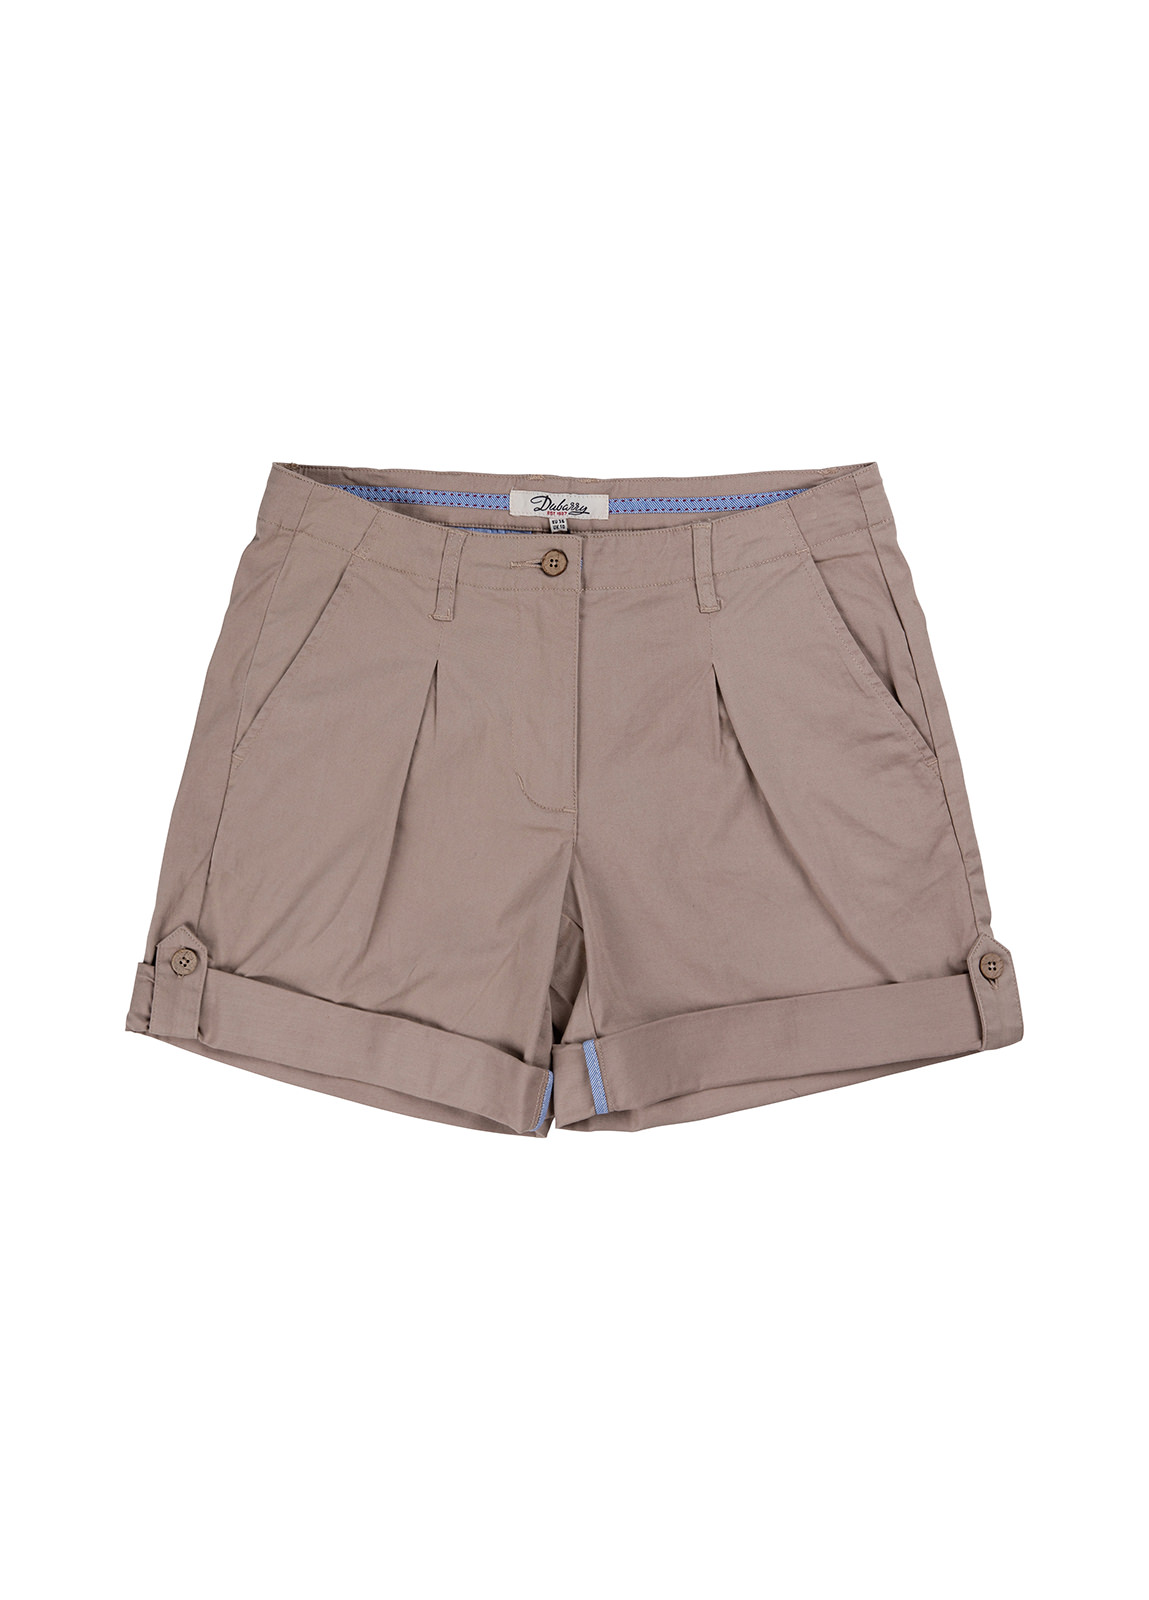 Summerhill ladies shorts - Sand